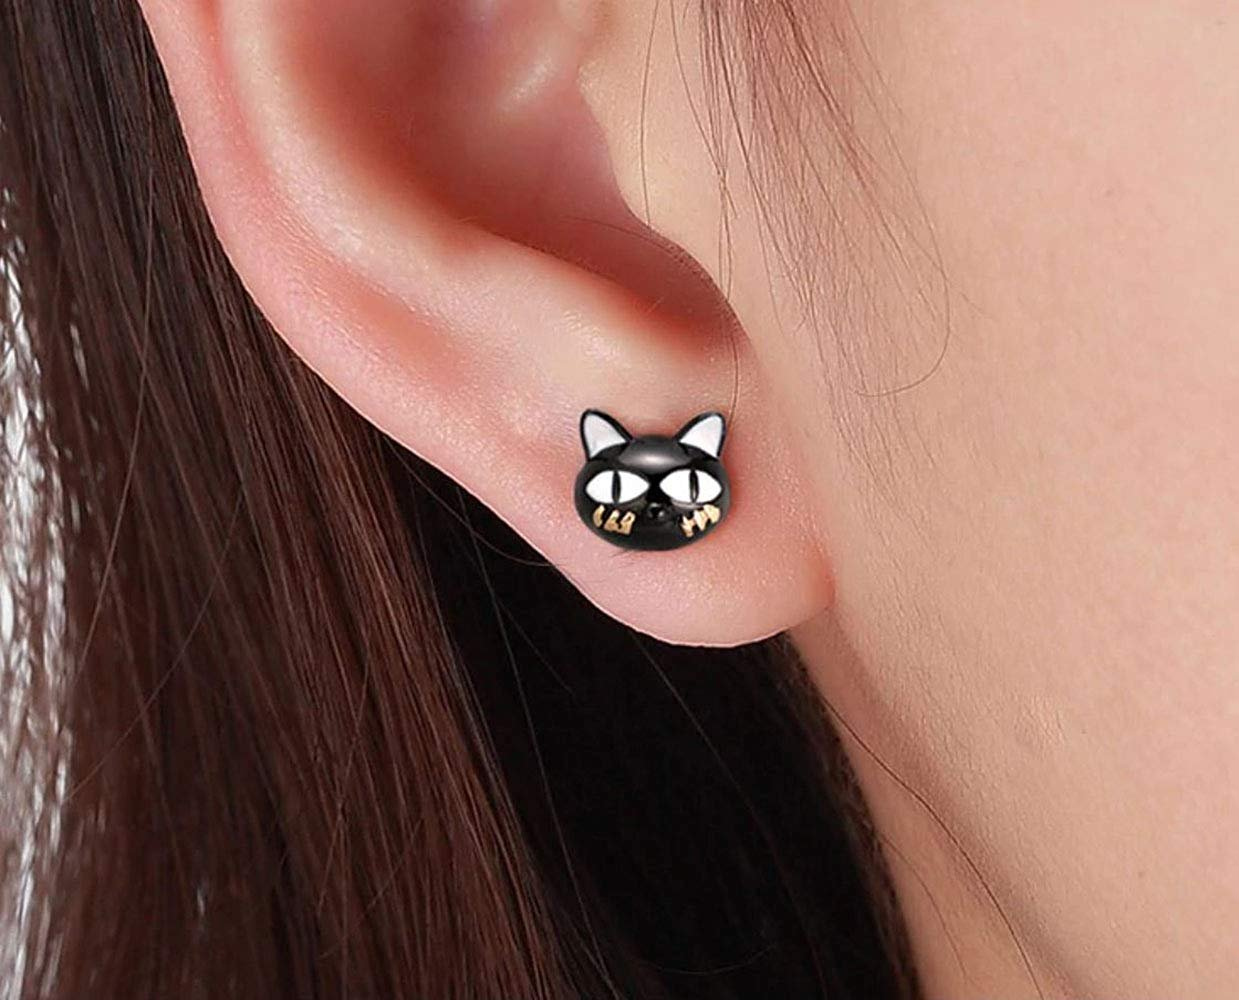 a959308b0 Ginger Lyne Collection - Ginny Black Cat Cute Kitty Kitten Stud Earrings  Sterling Silver Ginger Lyne Collection - Walmart.com